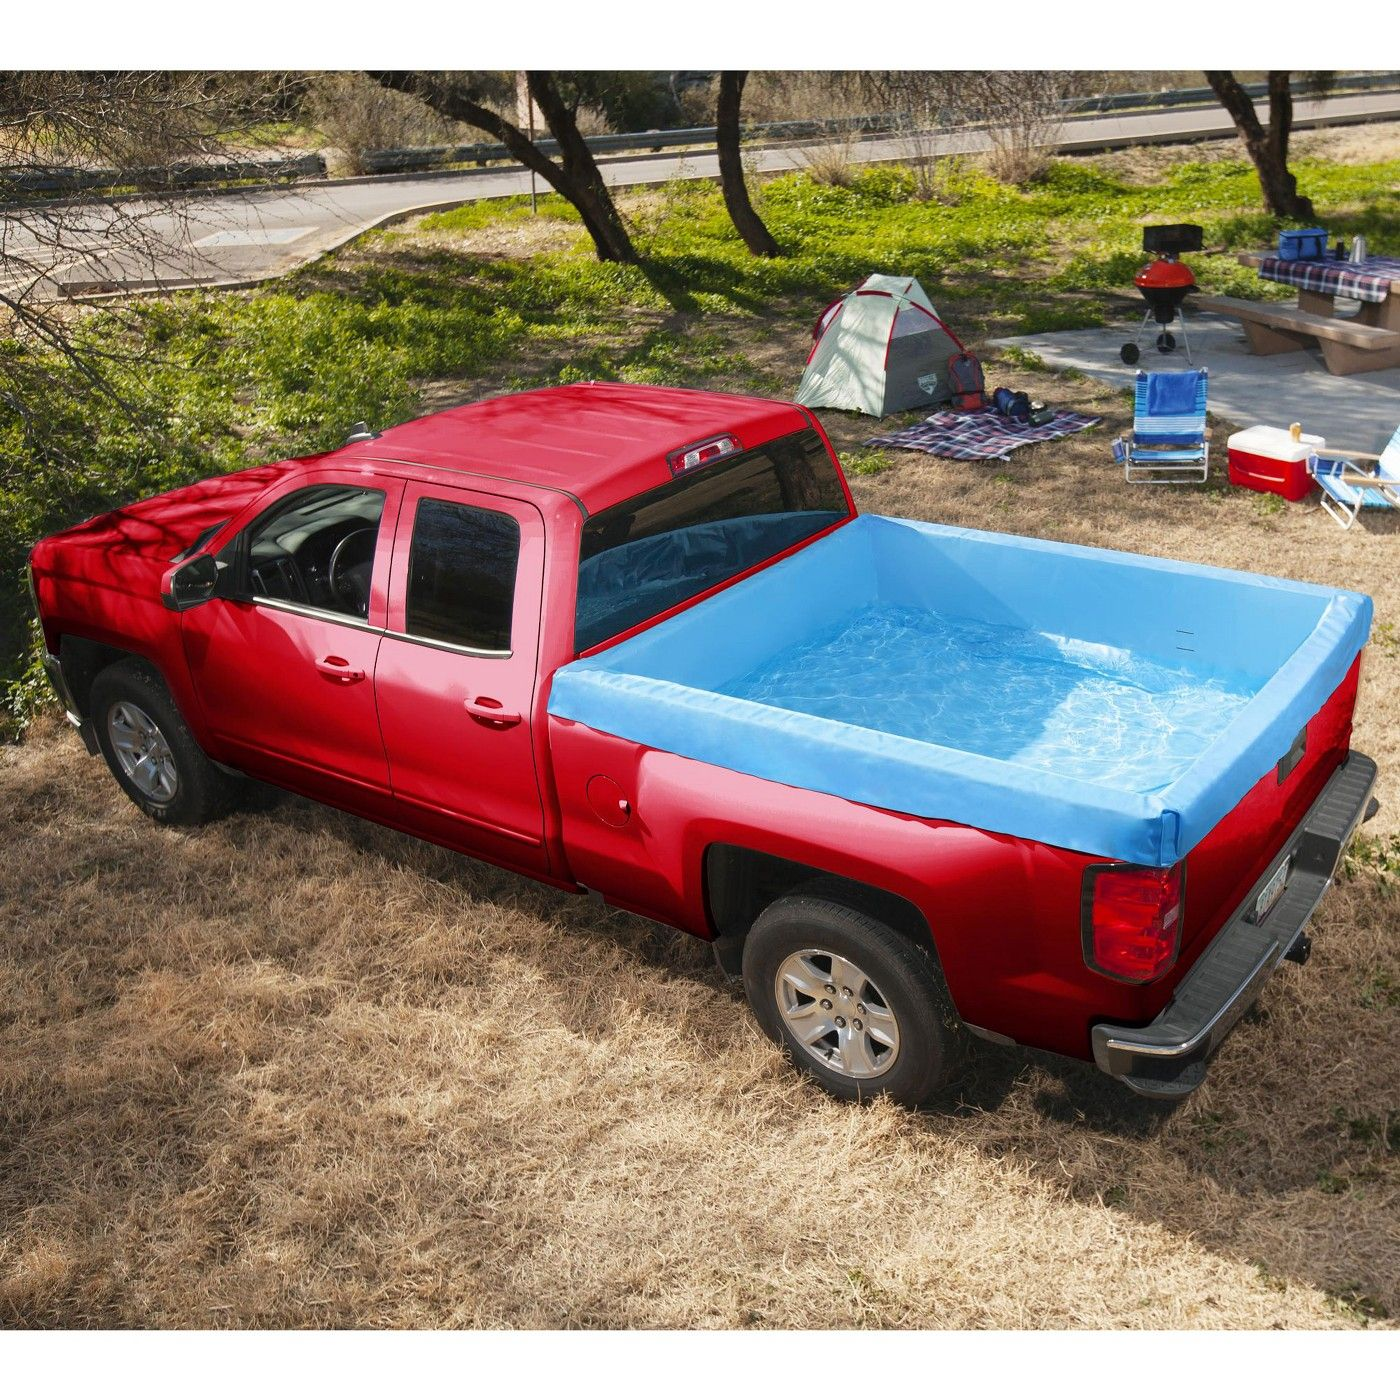 Bestway 54283e 67 X 65 X 21 Inch Portable Standard 5 5 Foot Payload Pickup Truck Bed Swimming Pool Made With Ultra Durable Pvc Material Pickup Trucks Bed Pickup Trucks Truck Bed